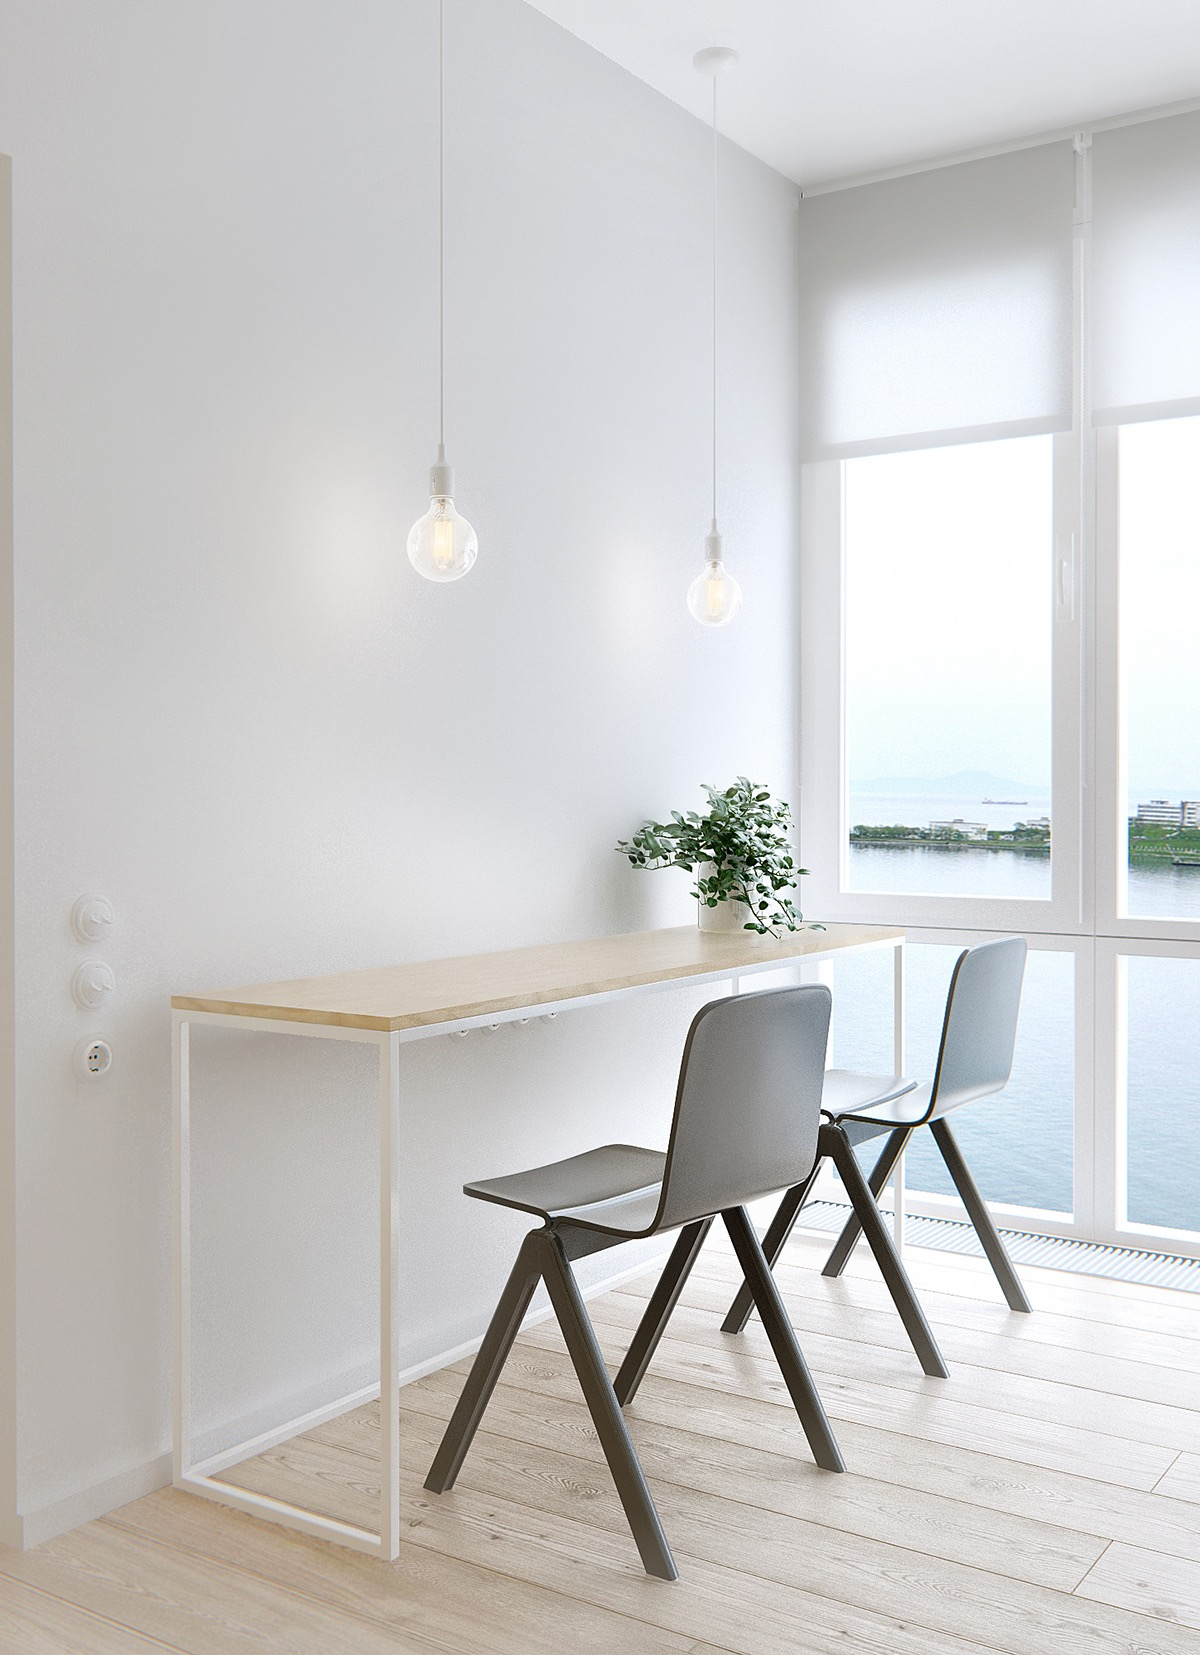 Simple White Table - Minimalist apartment for a family of four